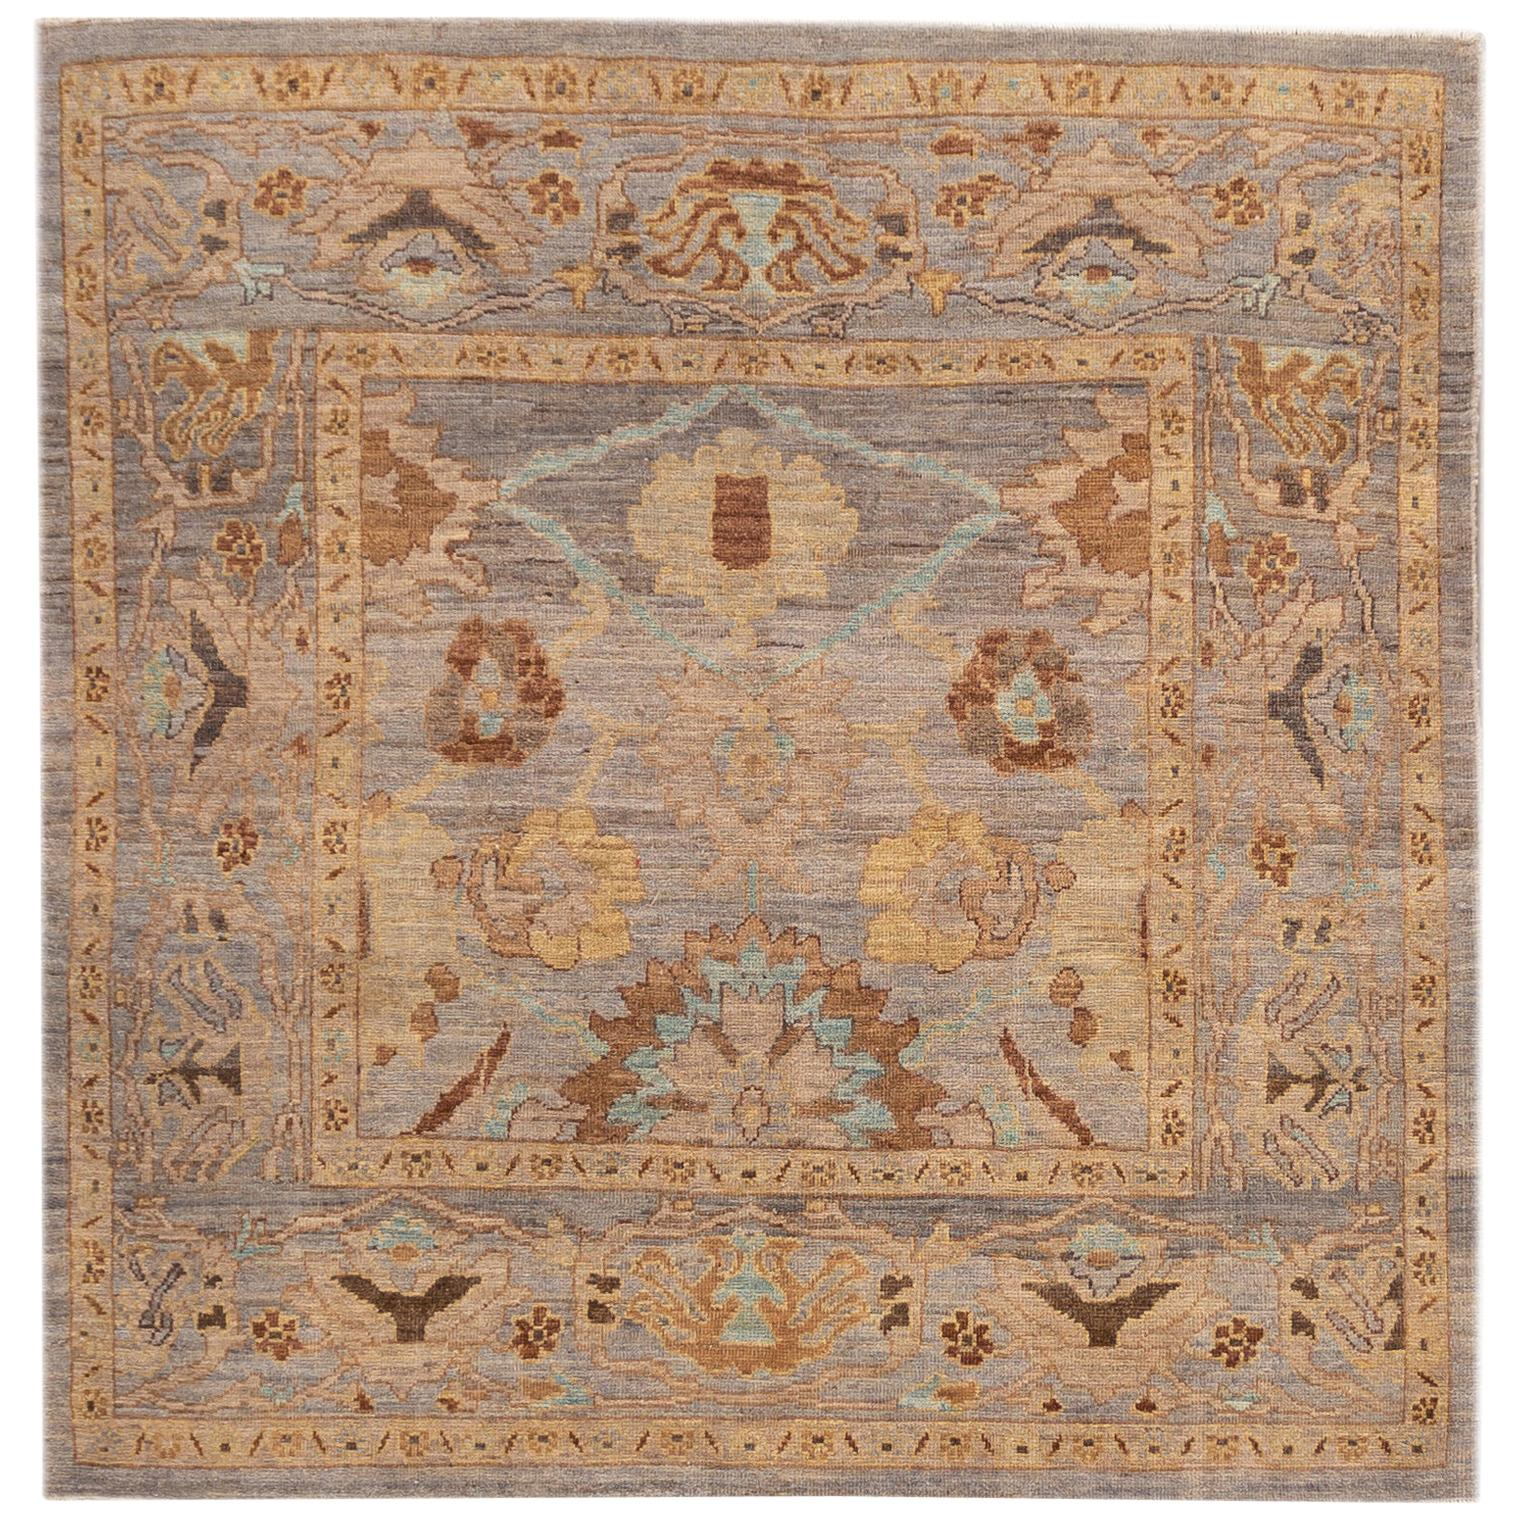 21st Century Modern Square Sultanabad Rug